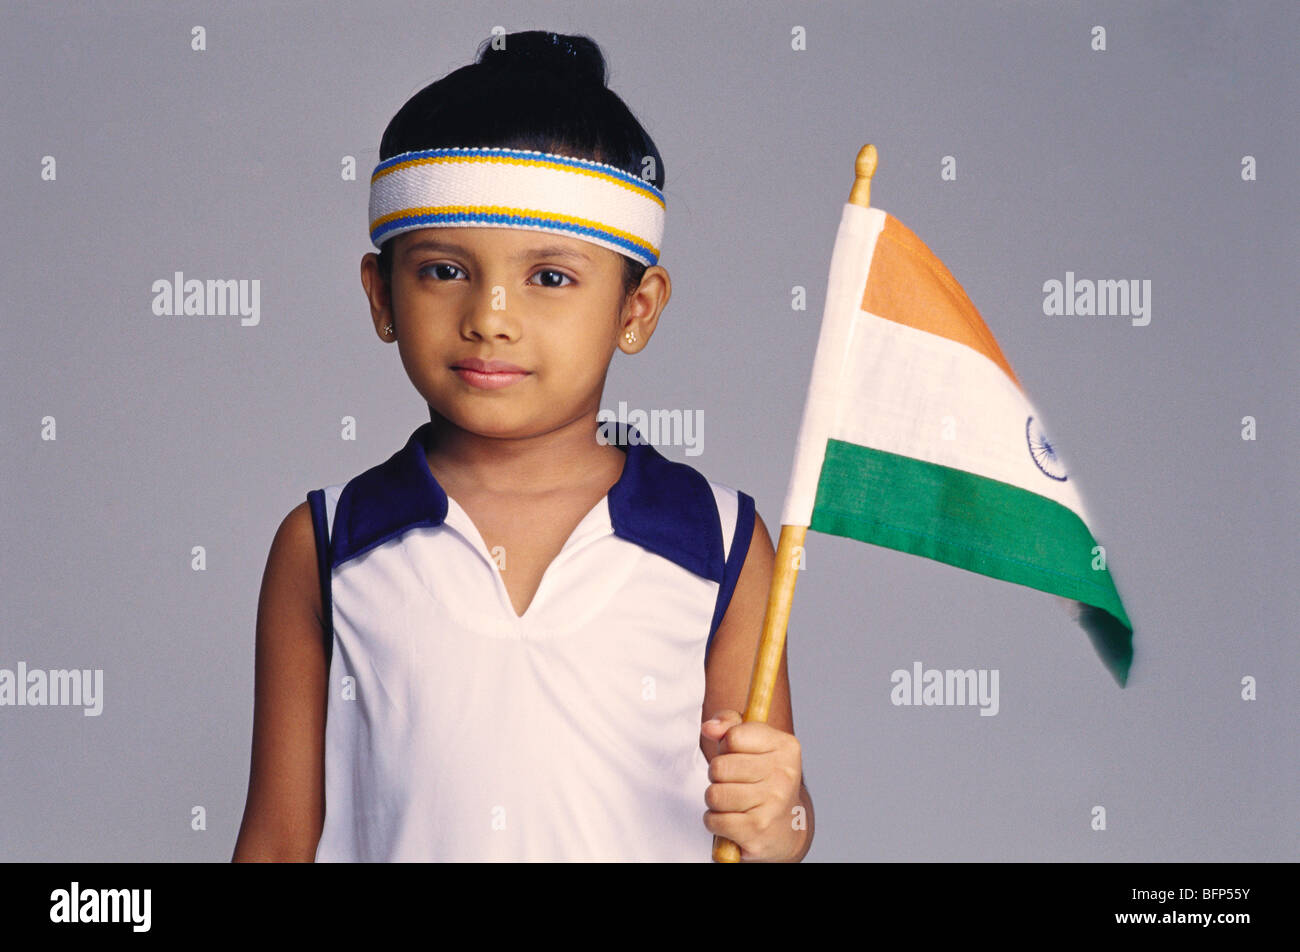 fc758f99b VDA 63767 : Girl dressed as tennis player holding flag of India MR#500 -